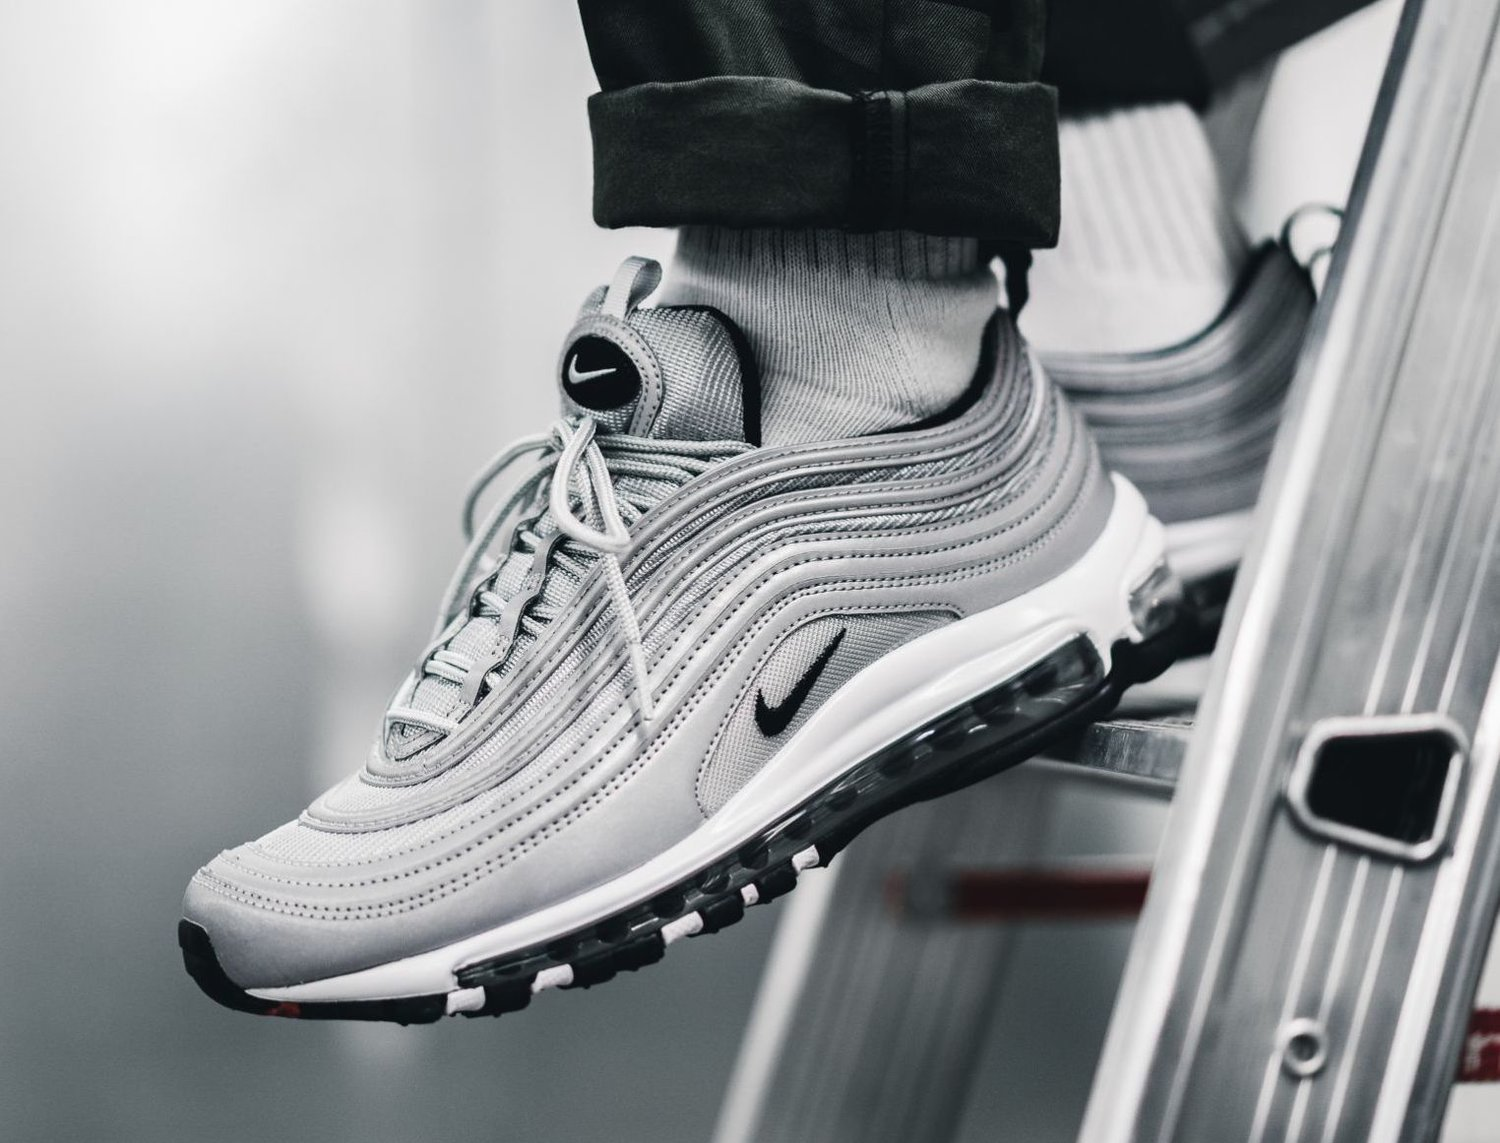 reputable site 27c68 b422c On Sale: Nike Air Max 97 Reflective